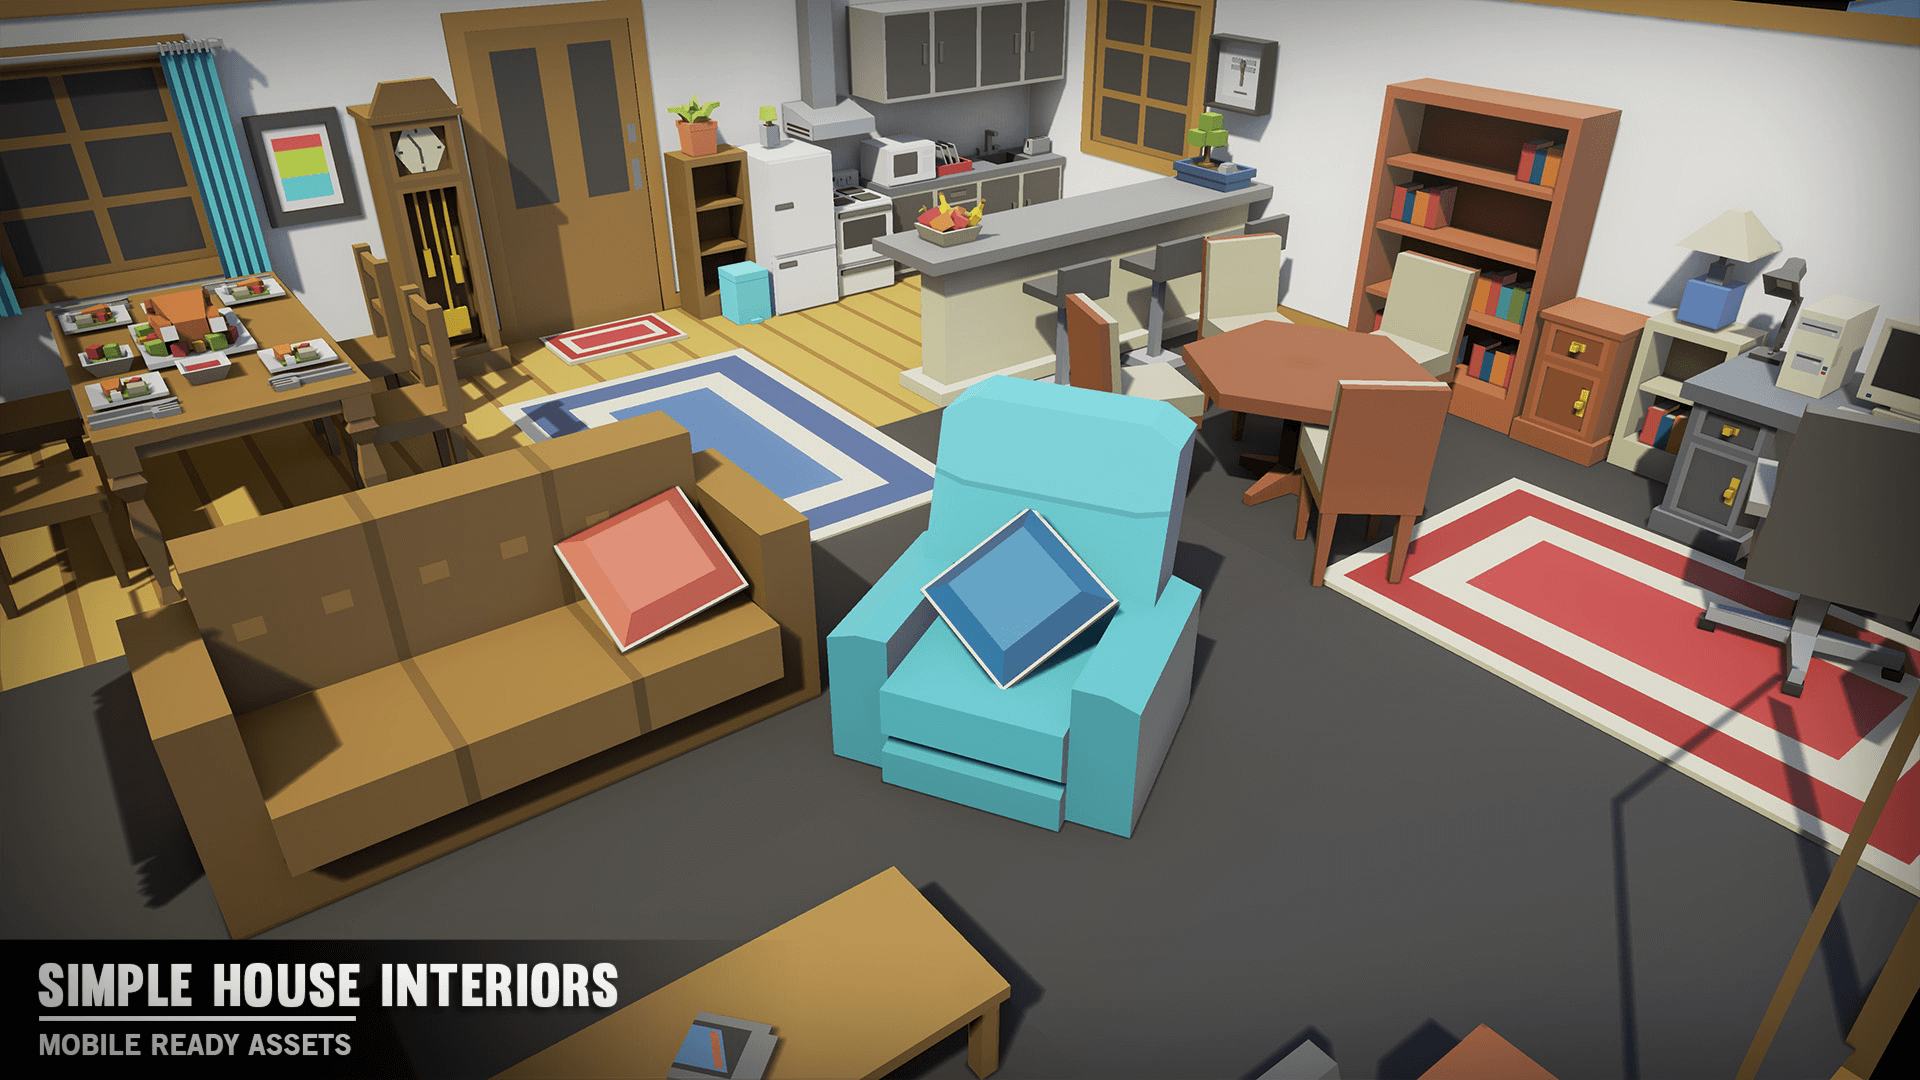 Simple House Interiors by Synty Studios in Environments - UE4 ...